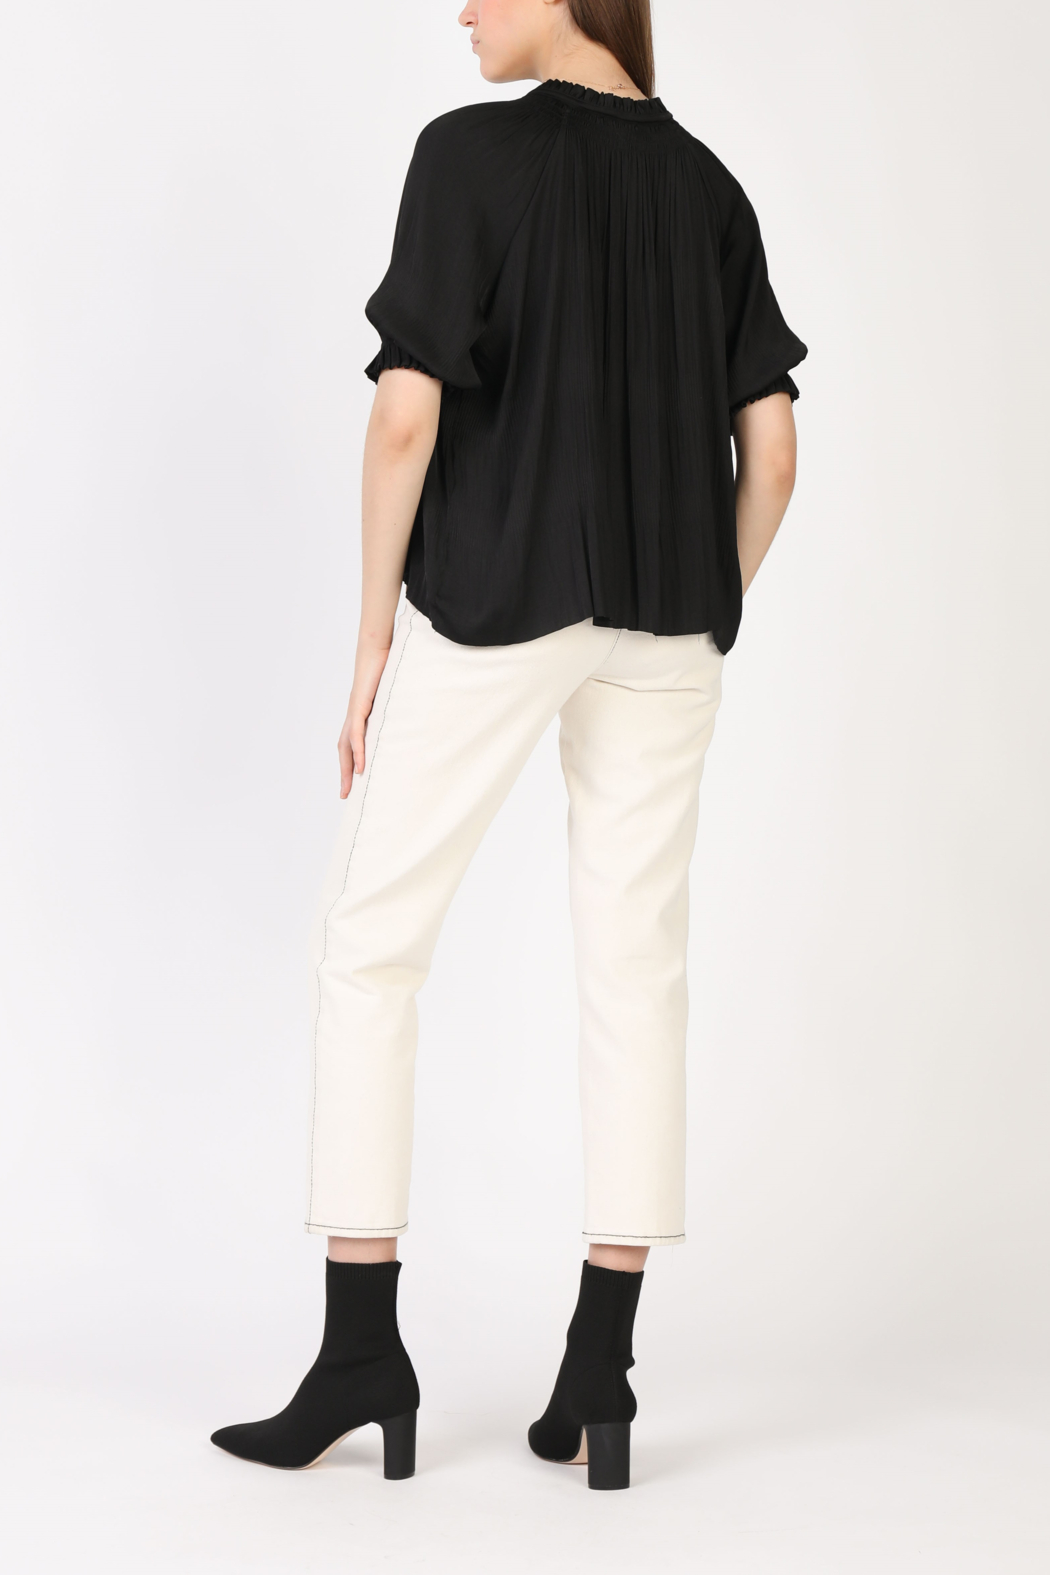 Current Air Angelic Pleated Blouse - Front Full Image